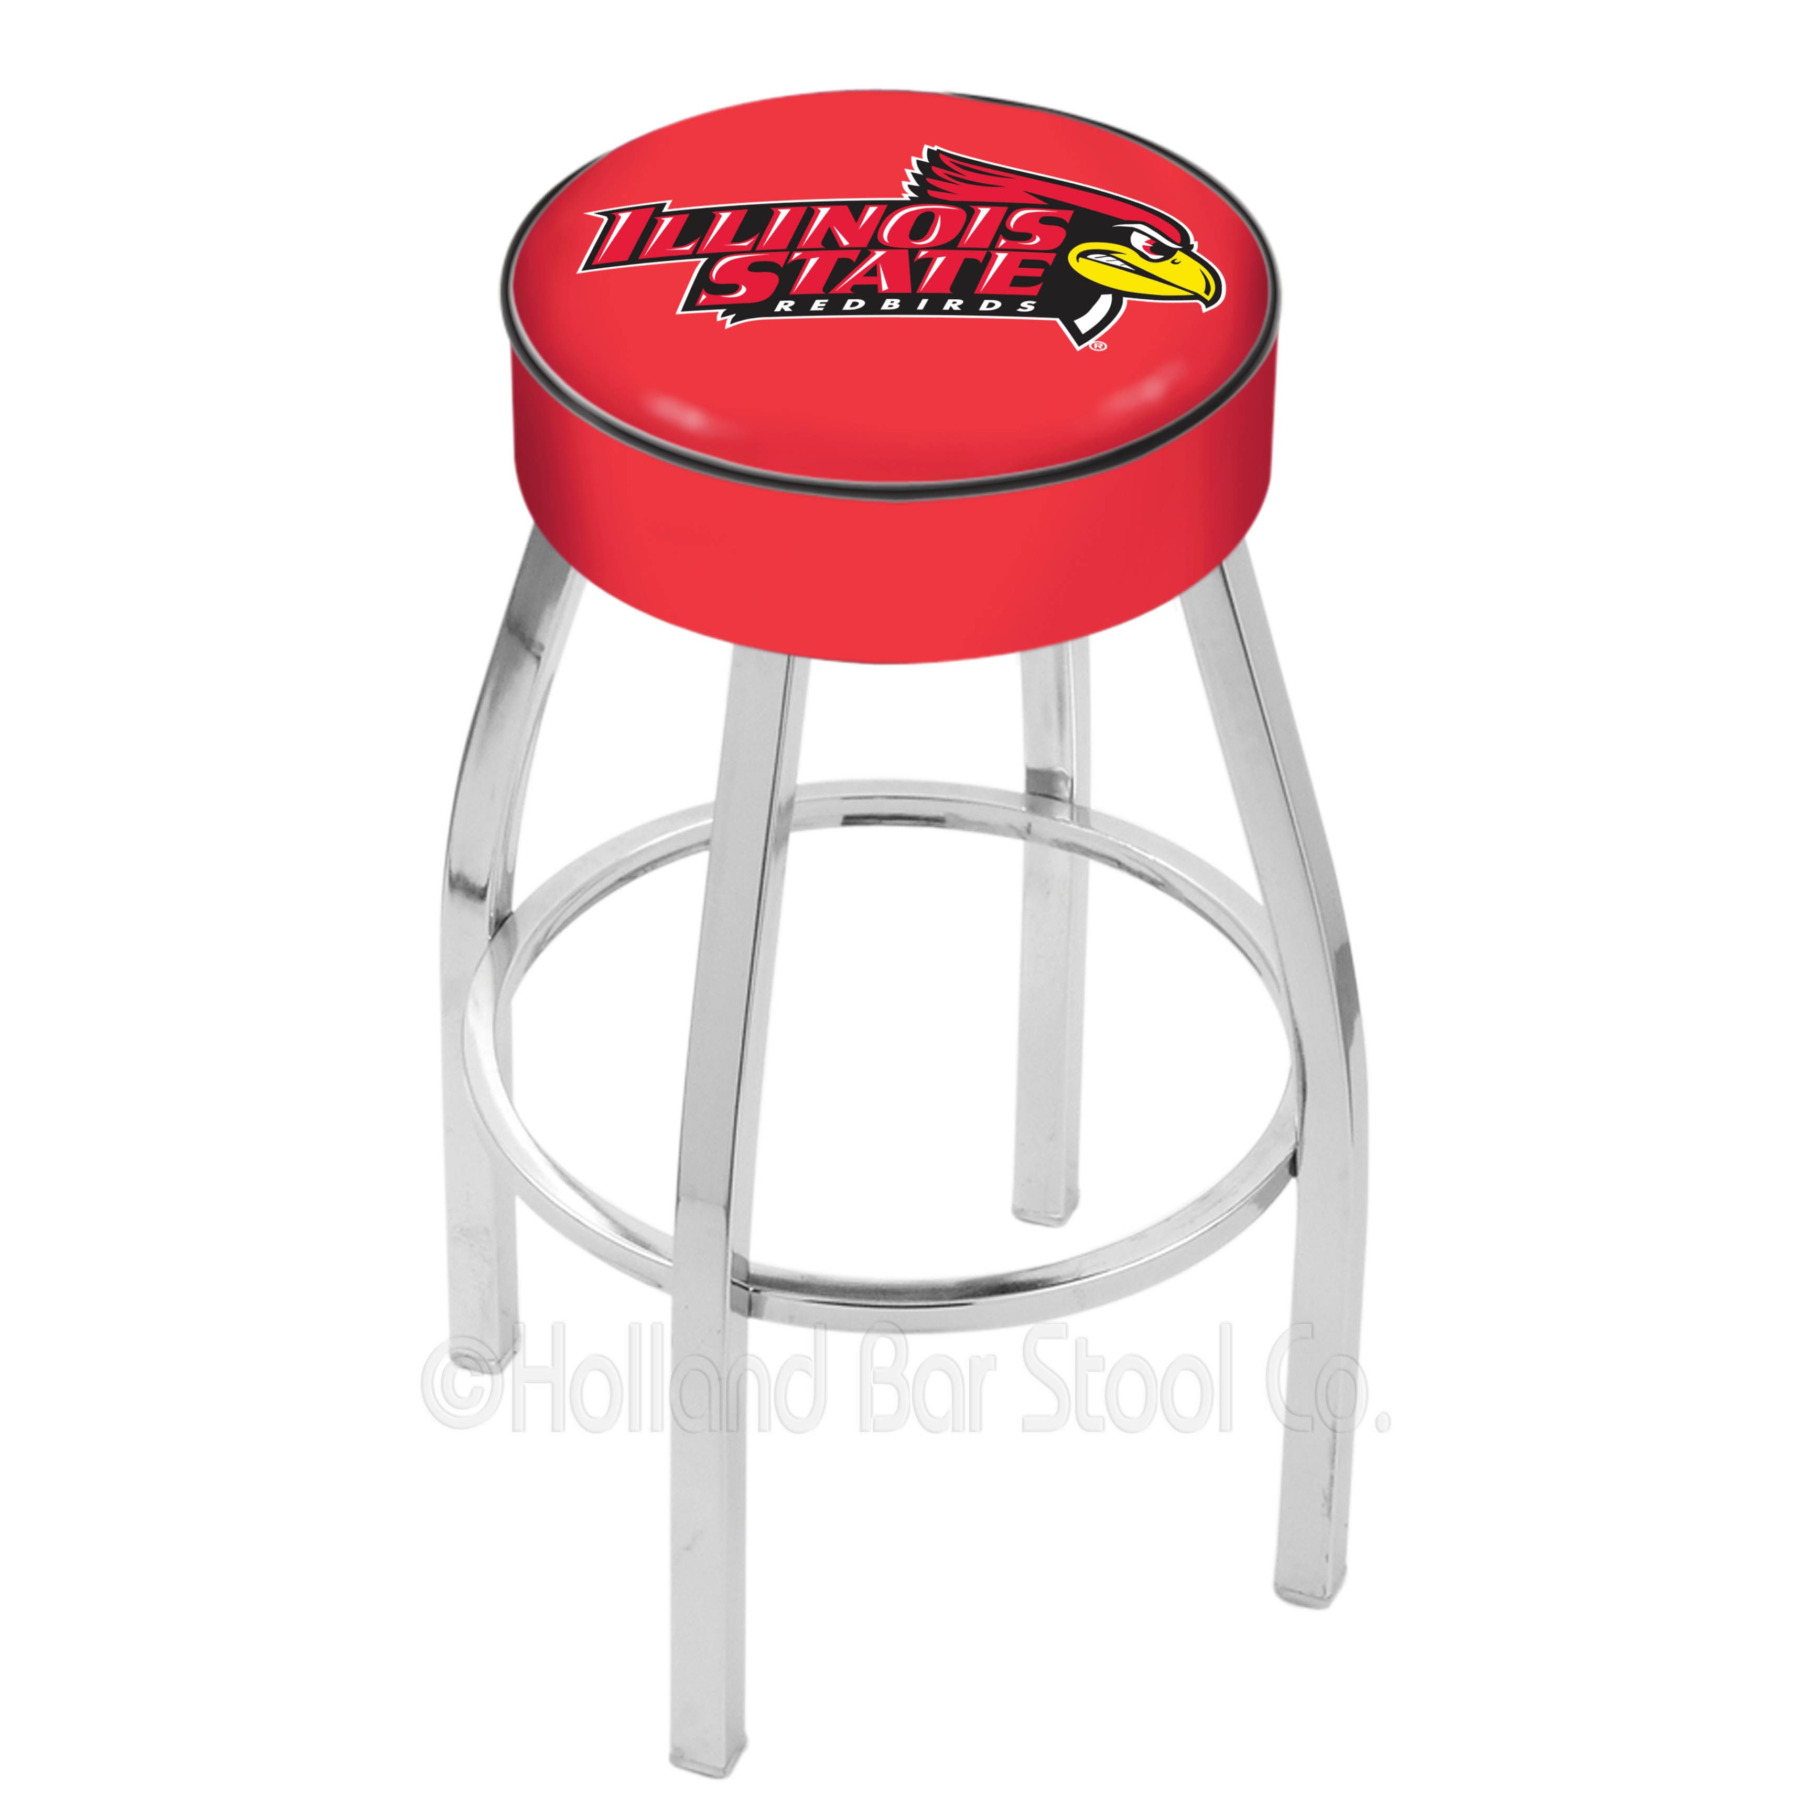 Illinois State Redbirds L8c1 Bar Stool By Hbs-25 L8C1IllStU